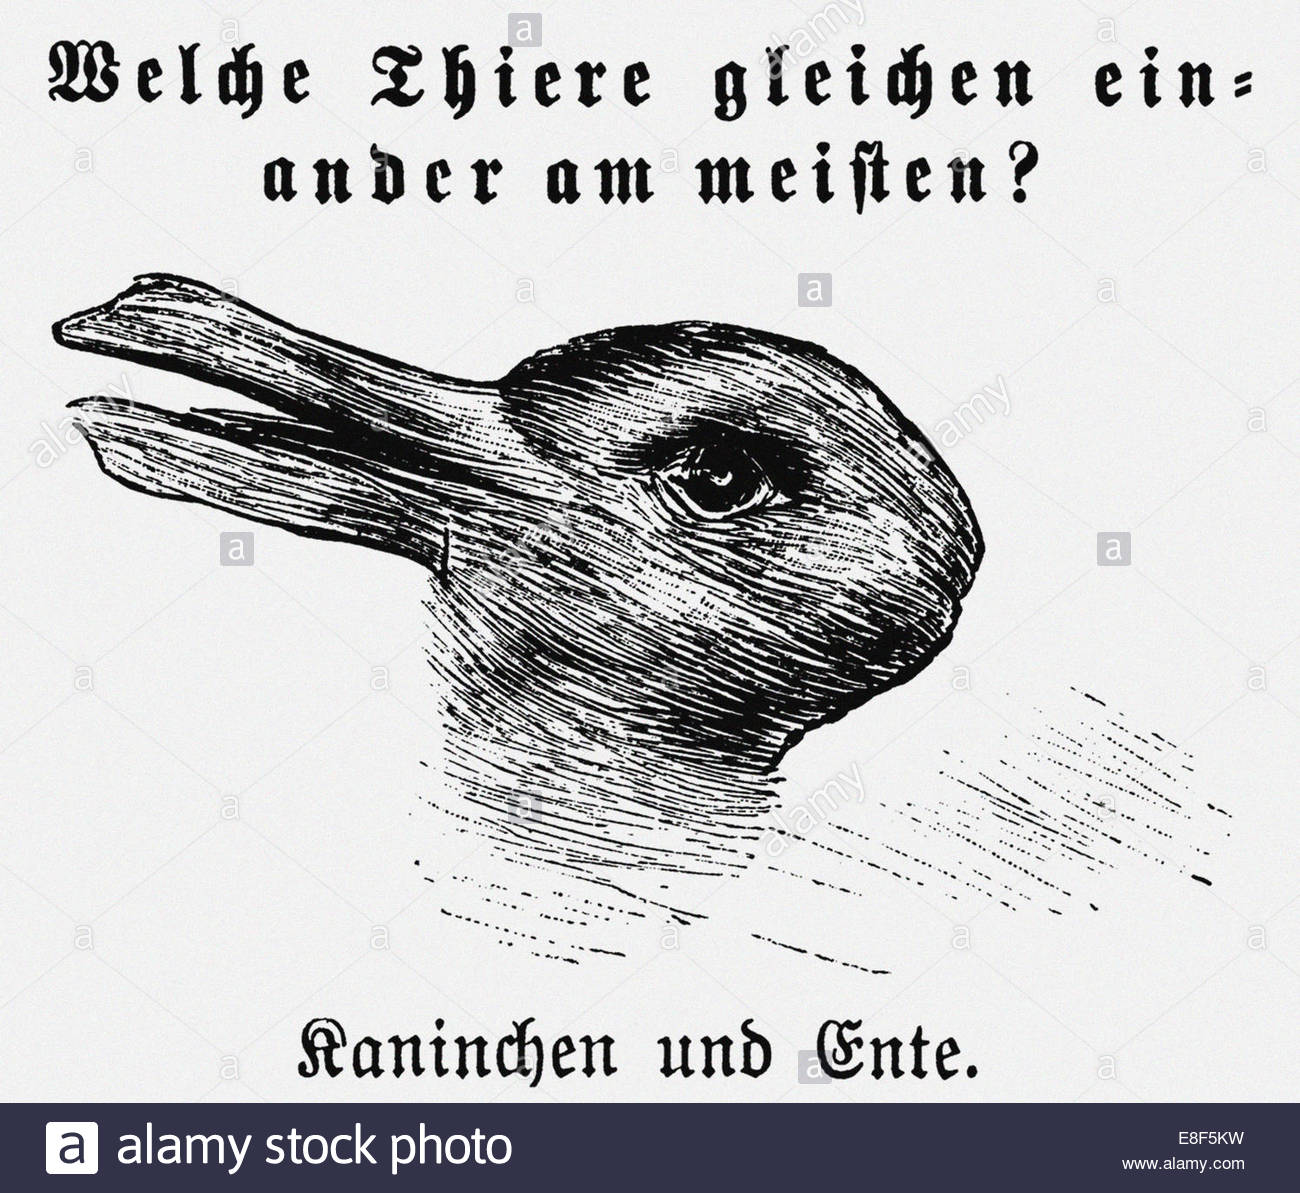 duck-rabbit-illusion-from-jastrow-j-the-